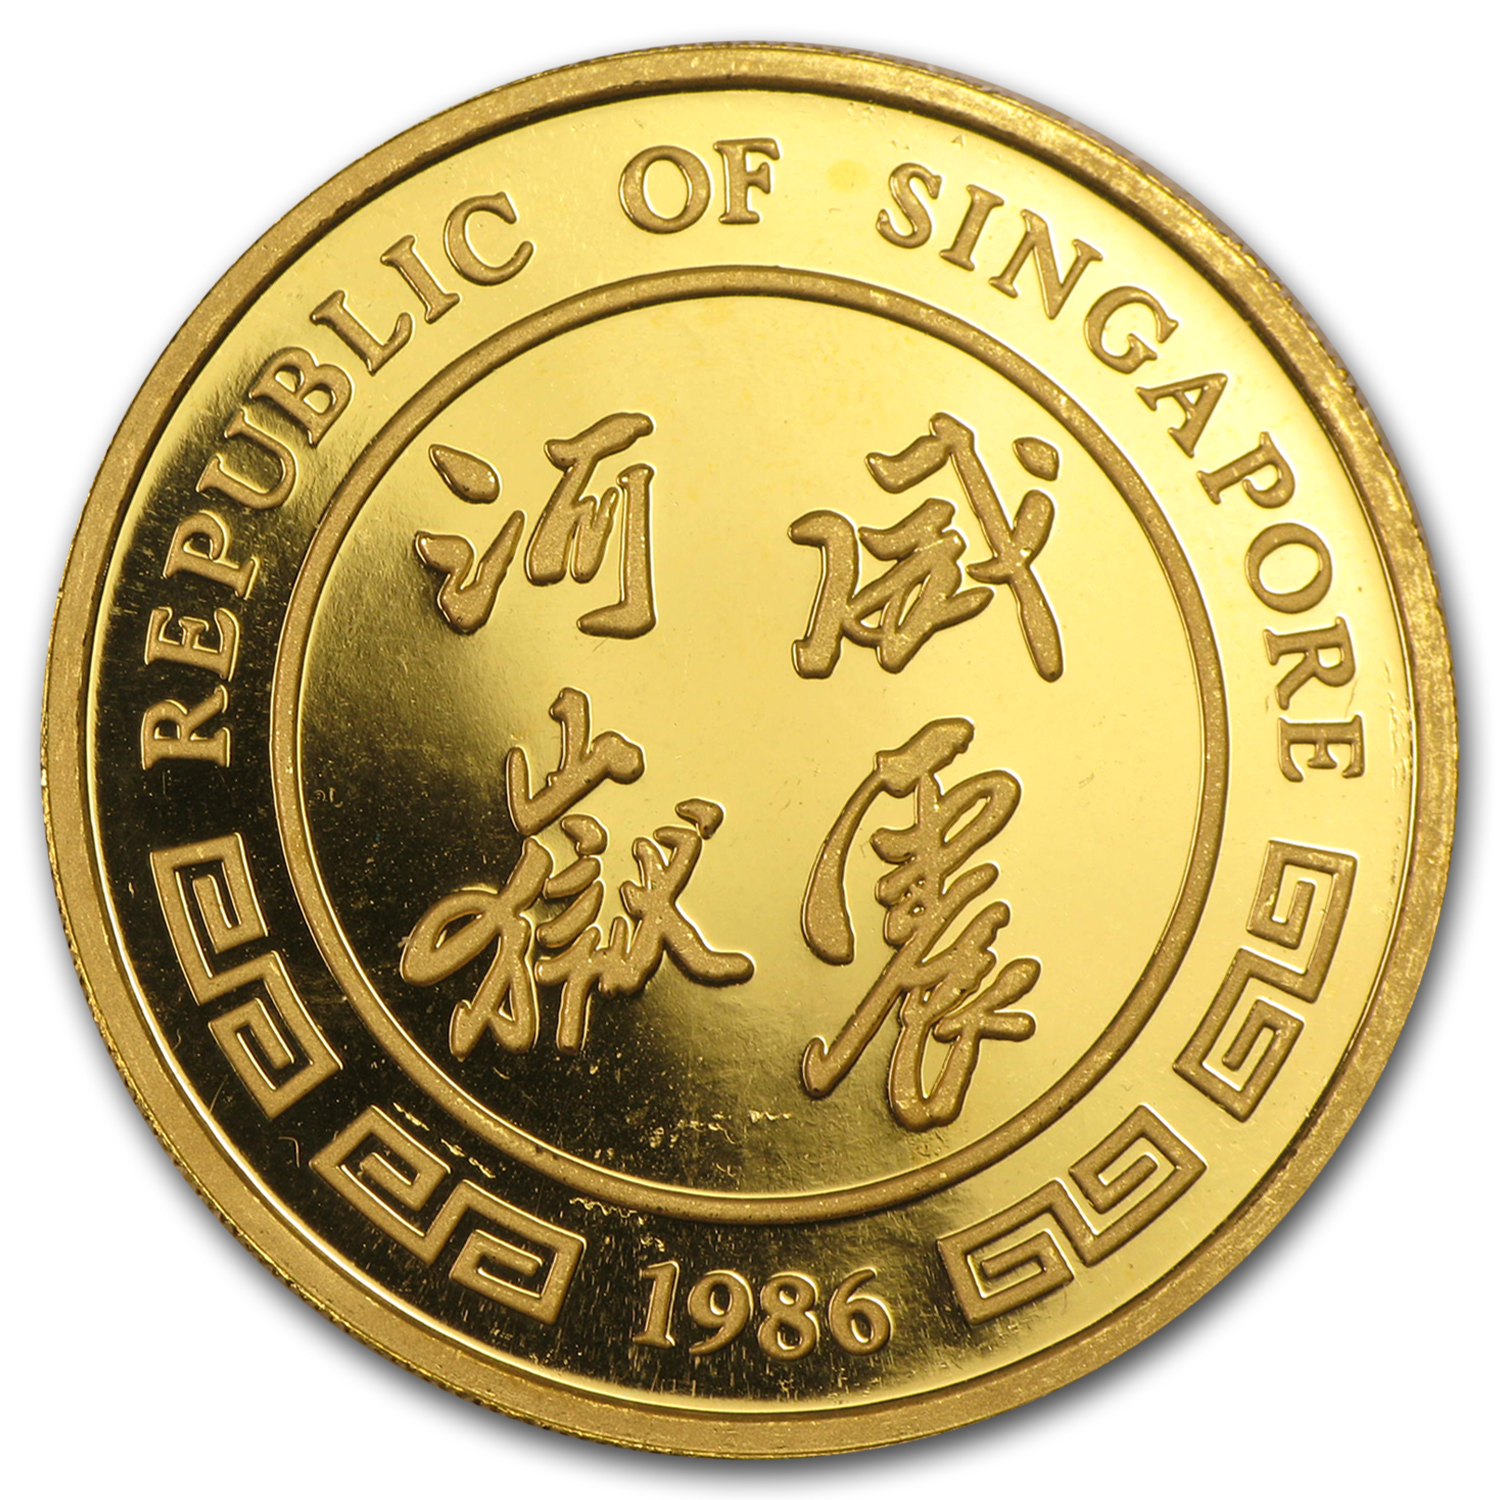 Singapore 1986 1 oz Gold - 100 Singold Proof-Like Tiger